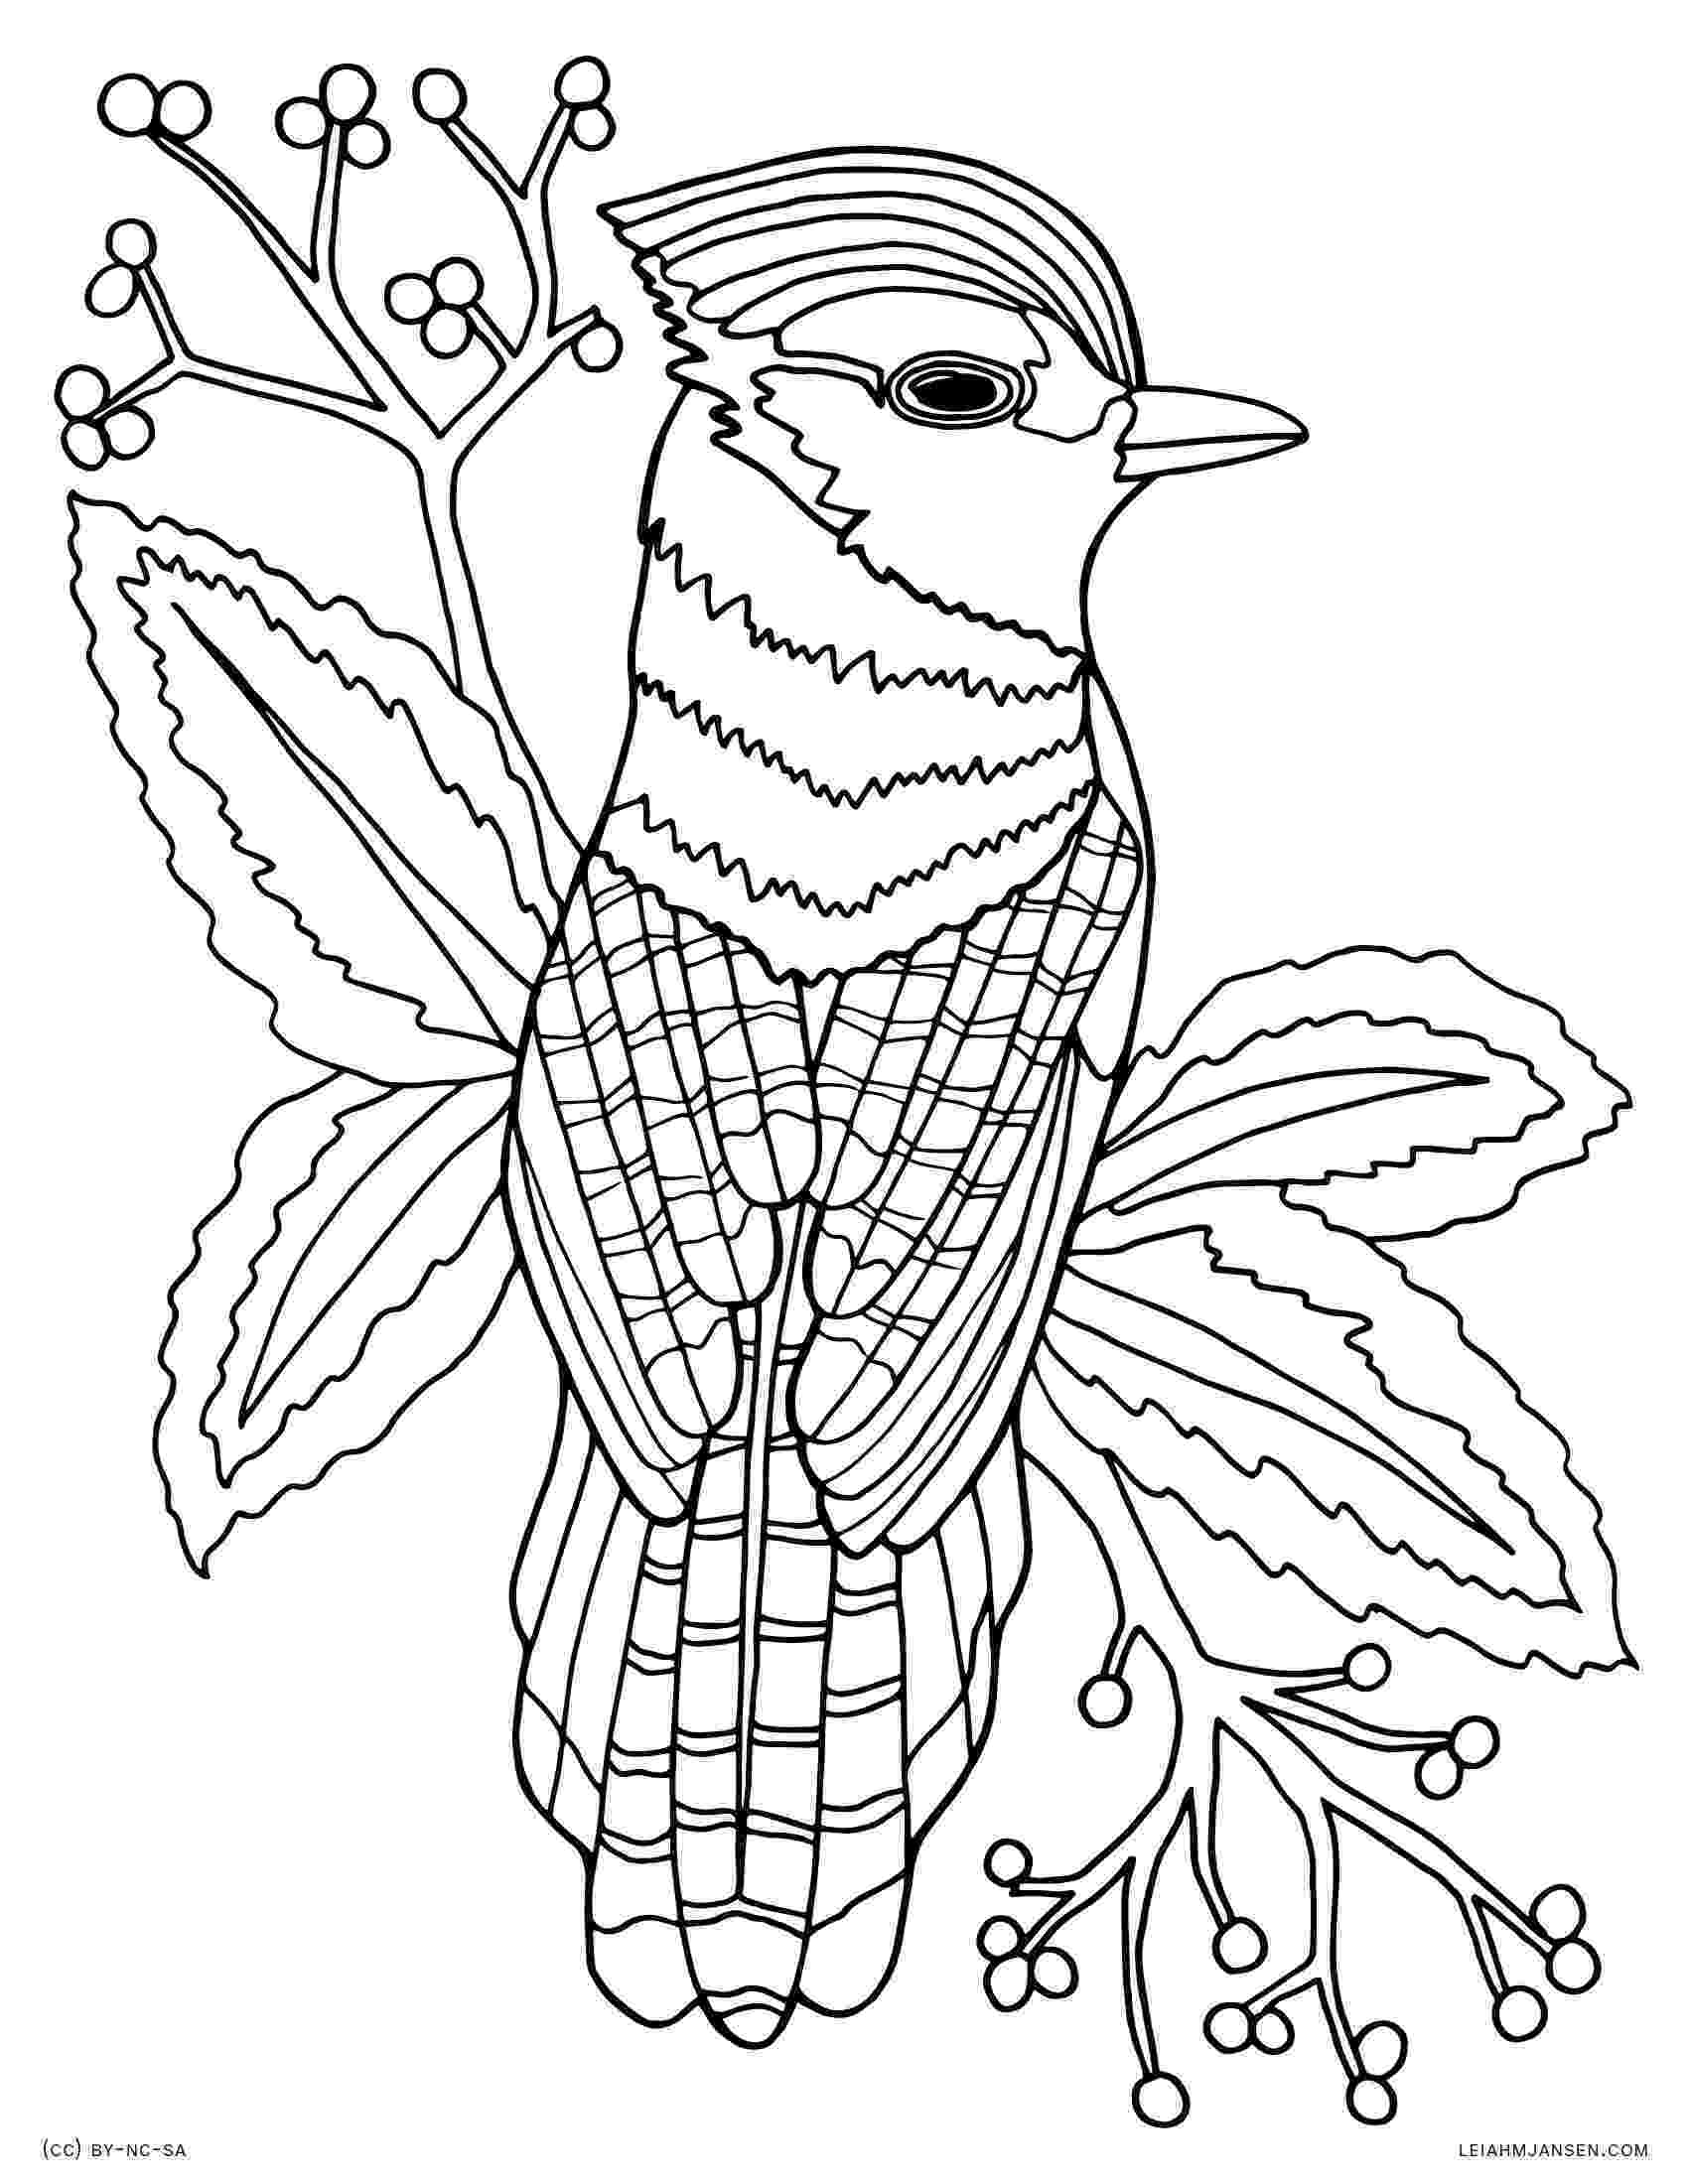 realistic coloring free realistic animal coloring pages realistic animal coloring realistic